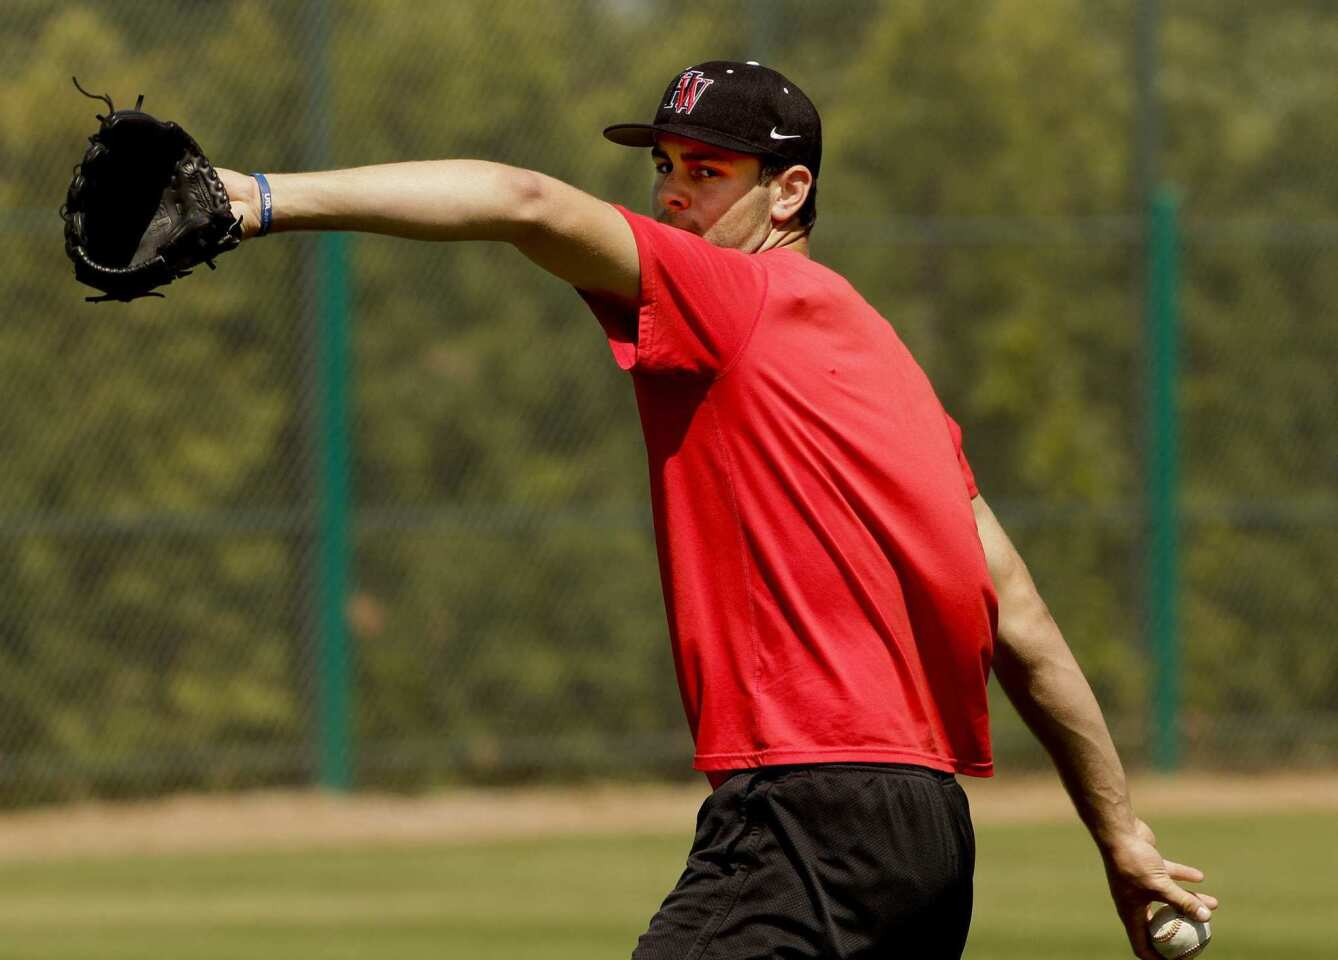 Lucas Giolito of Harvard-Westlake High pitches in public for the first time since rehabilitation from an elbow injury this spring during a workout at O'Malley Family Field in Encino.